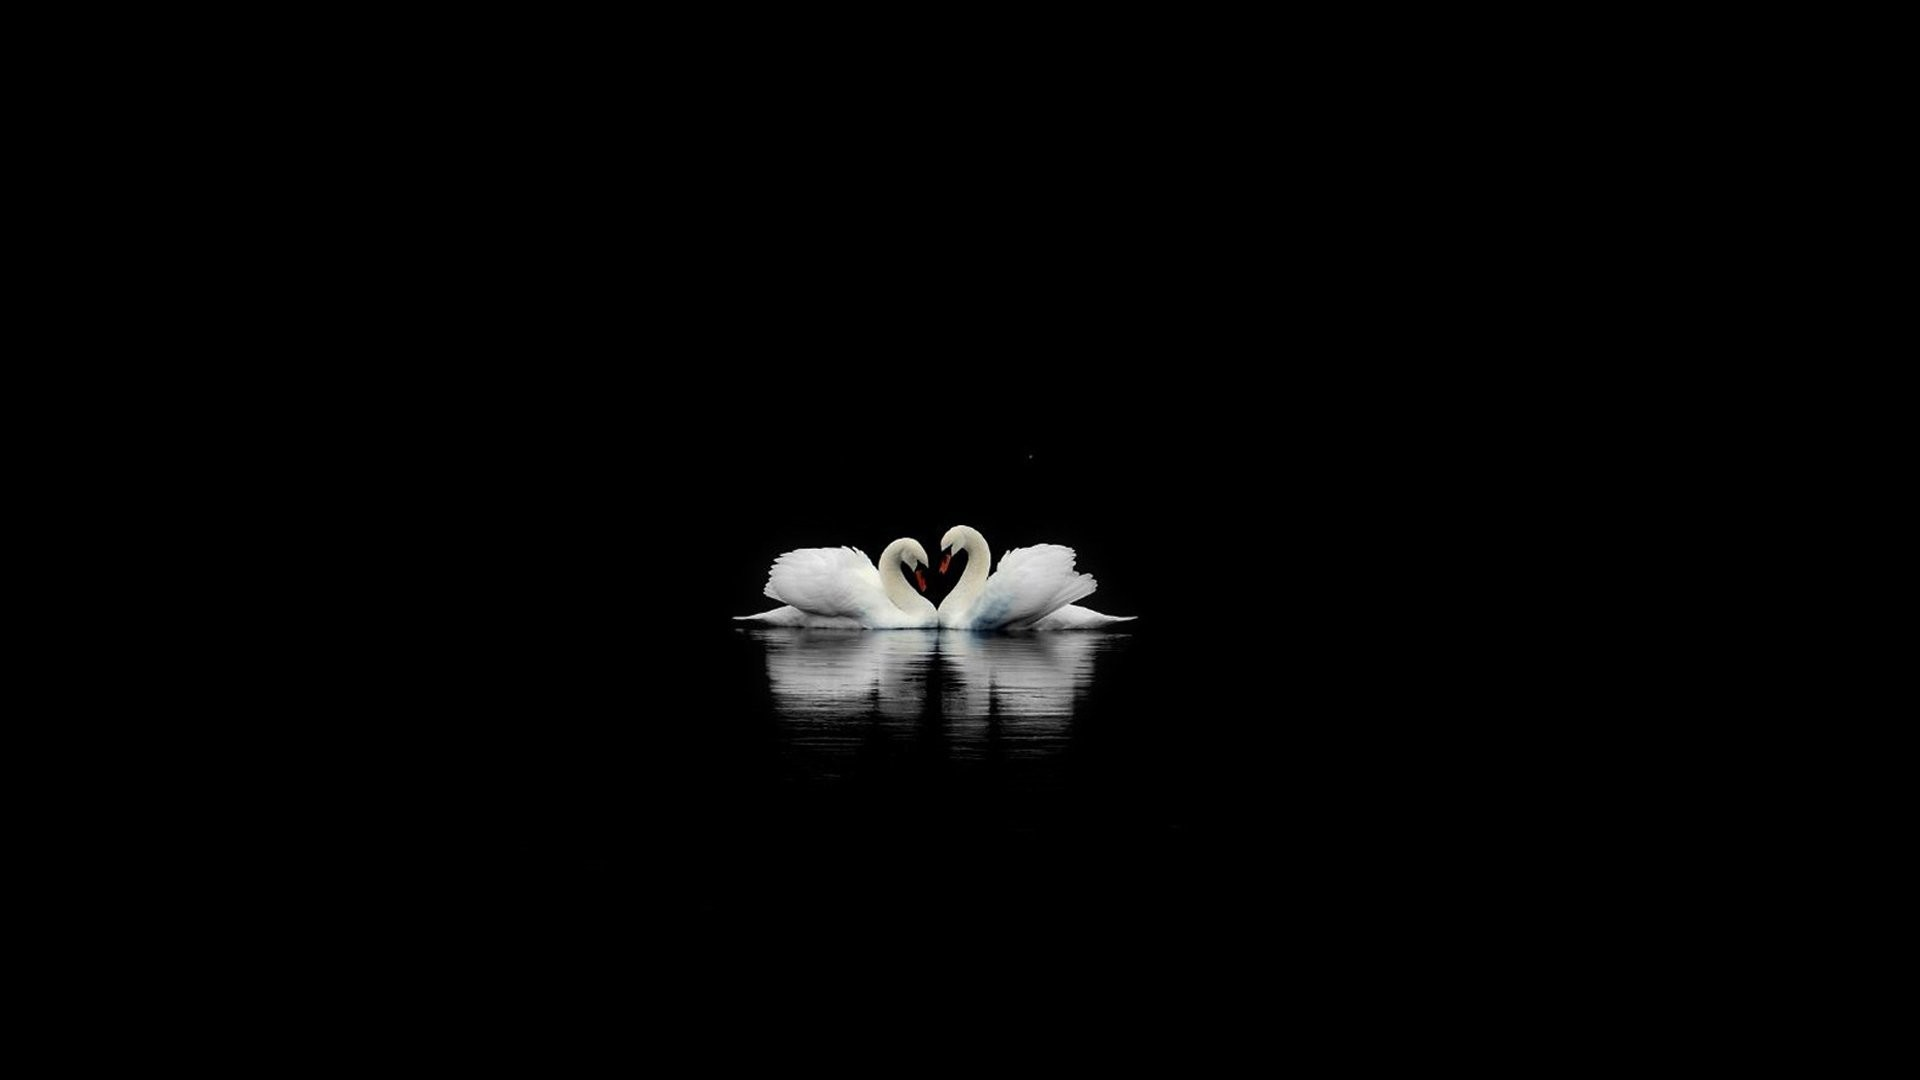 10 Top Cute Love Heart Wallpapers For Mobile Full Hd 1920: 1366x768 Wallpapers HD ·① WallpaperTag